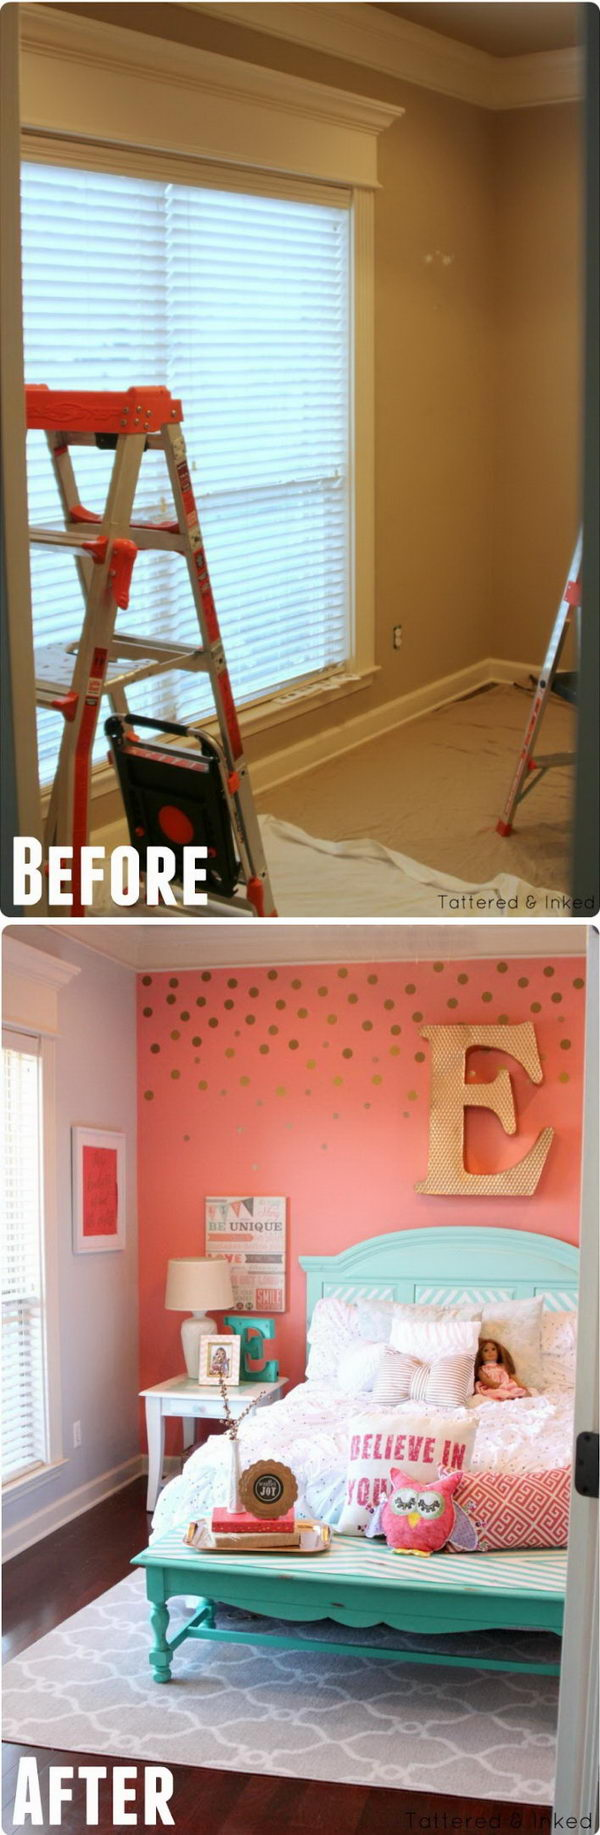 Comely Diy Girls Bedroom Decor